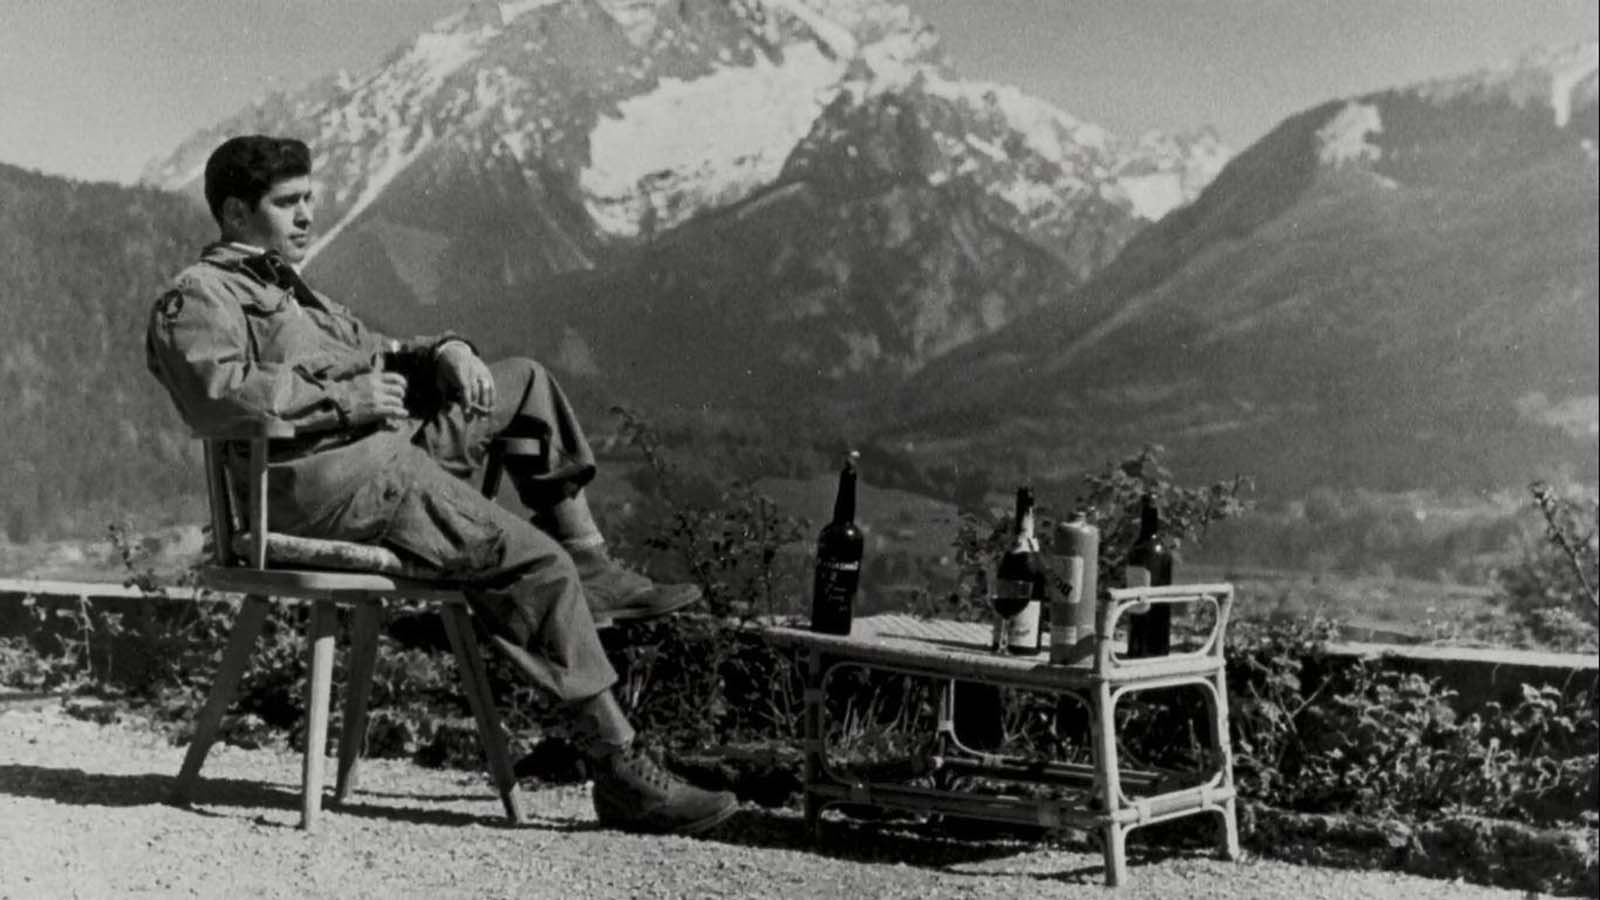 A paratrooper of the 101st Airborne Division enjoying the view and a cognac while lounging on the terrace of Hitler's retreat at Berchtesgaden after the end of the war in 1945.